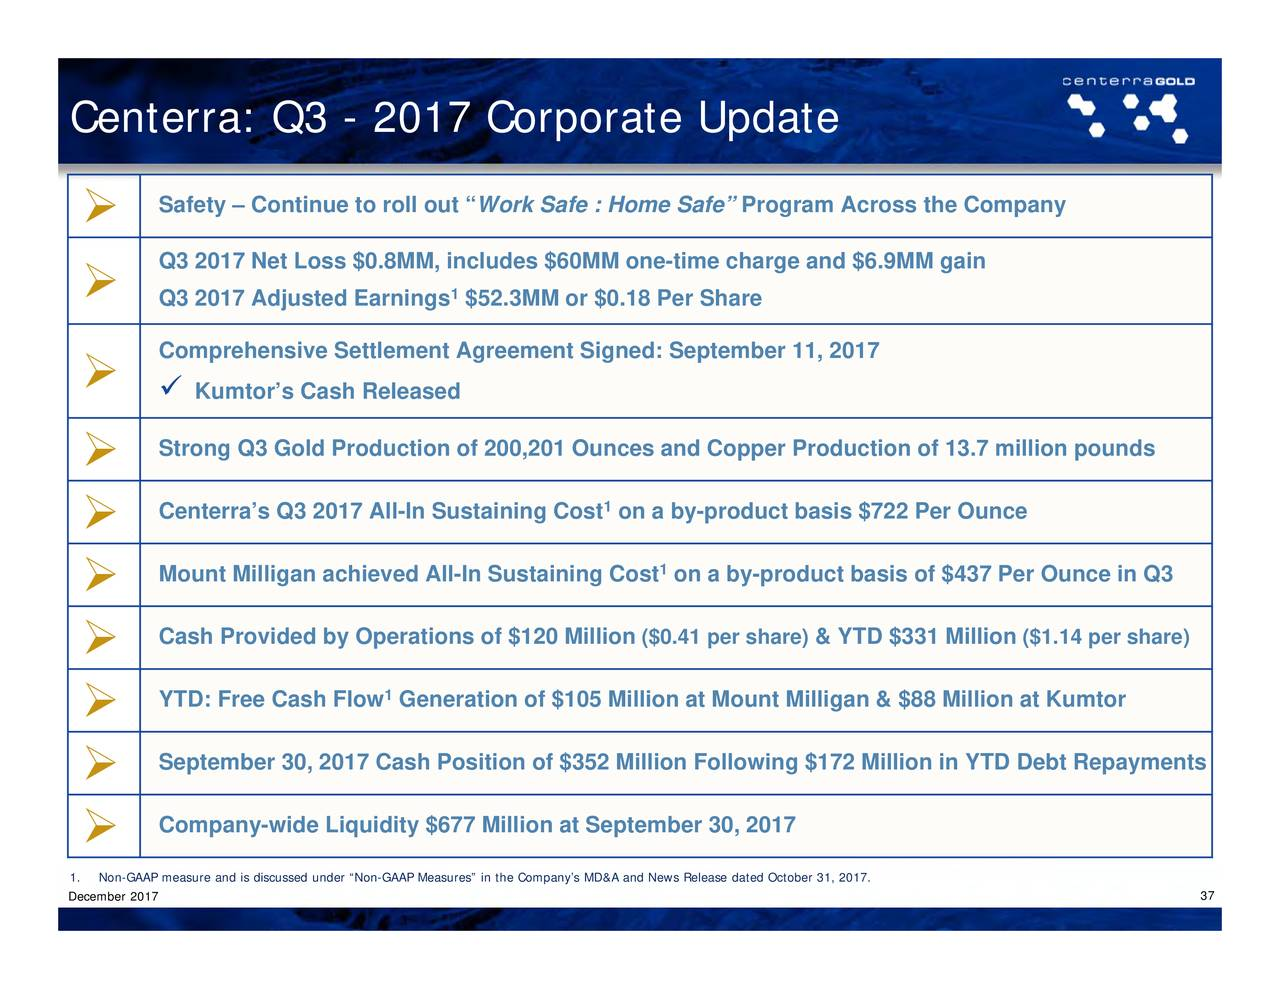 Centerra Gold Cagdf Presents At Scotiabank Mining Conference 2017 Slideshow Inc Otcmkts Seeking Alpha